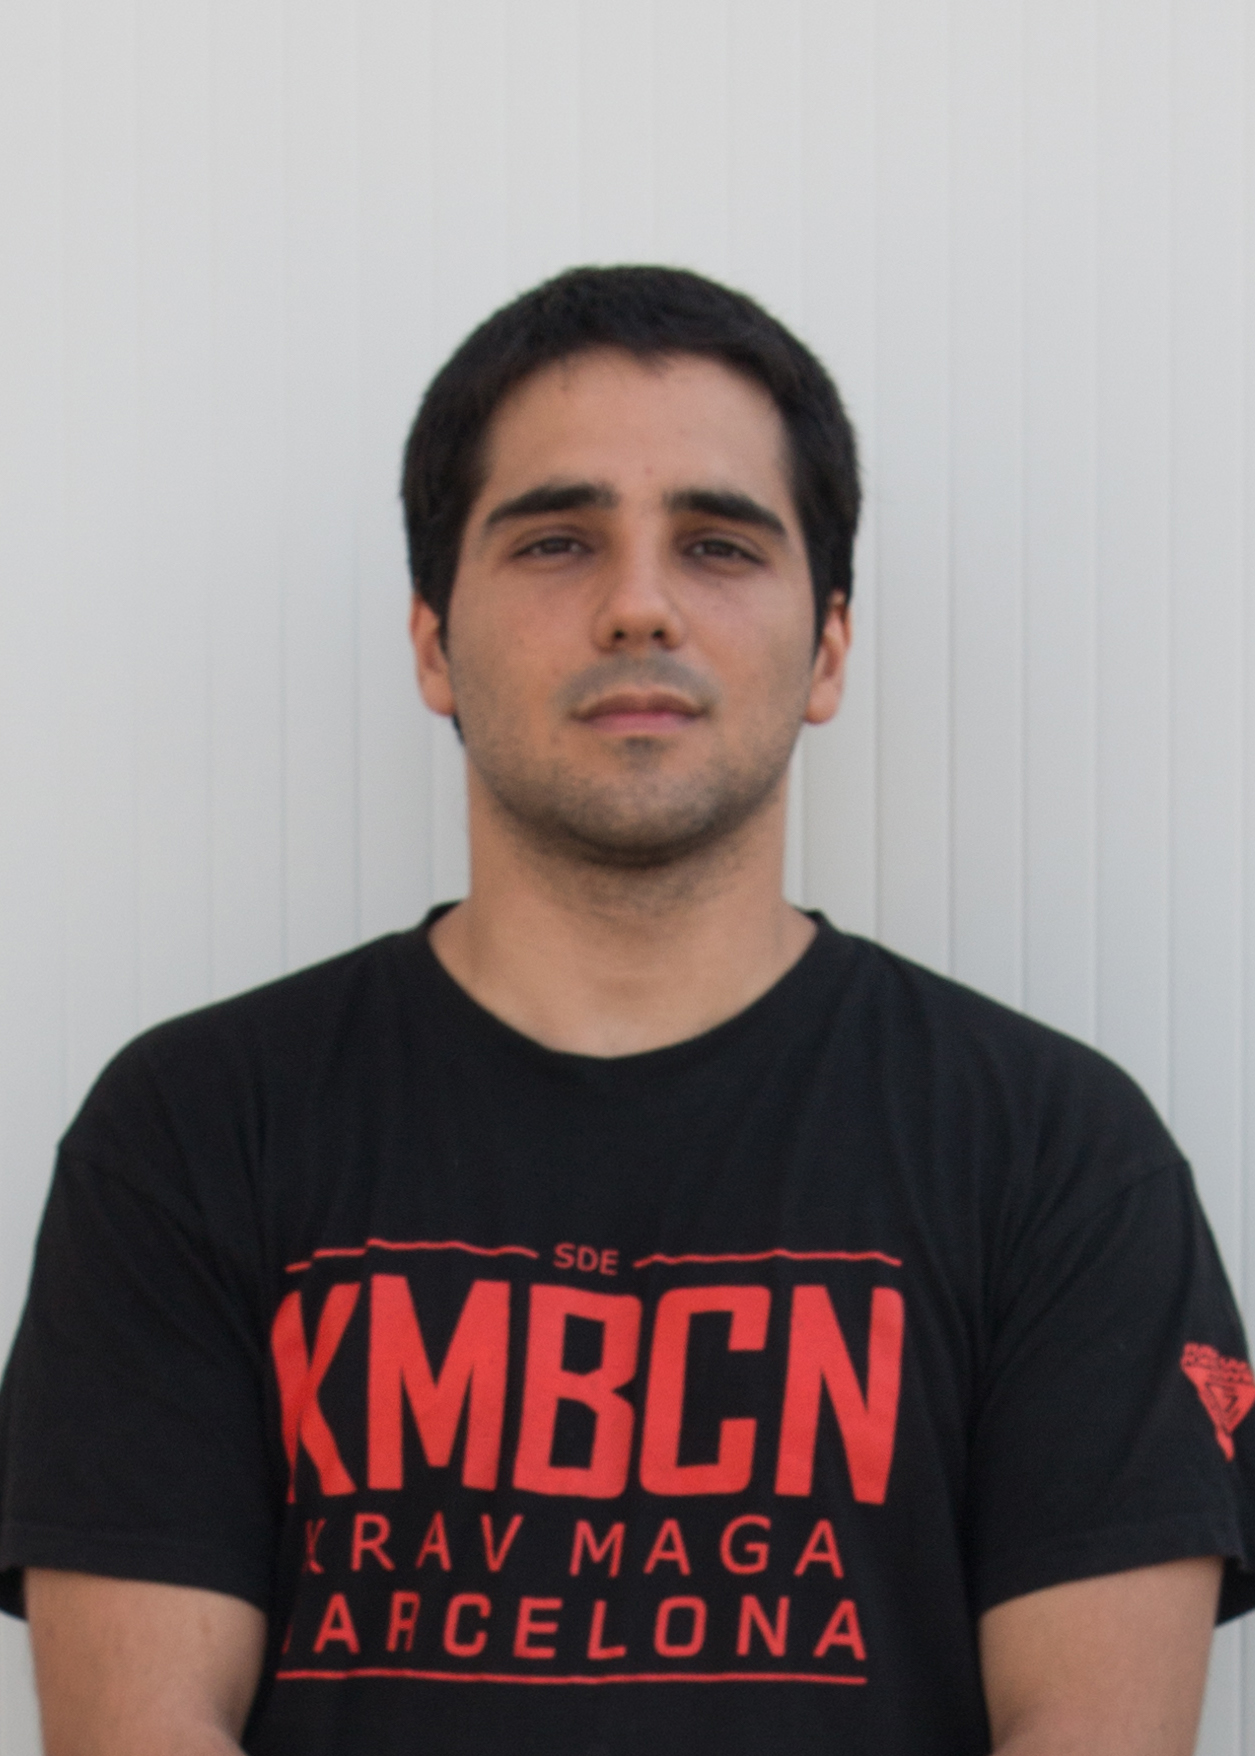 Instructor Oriol Murall KMWBCN